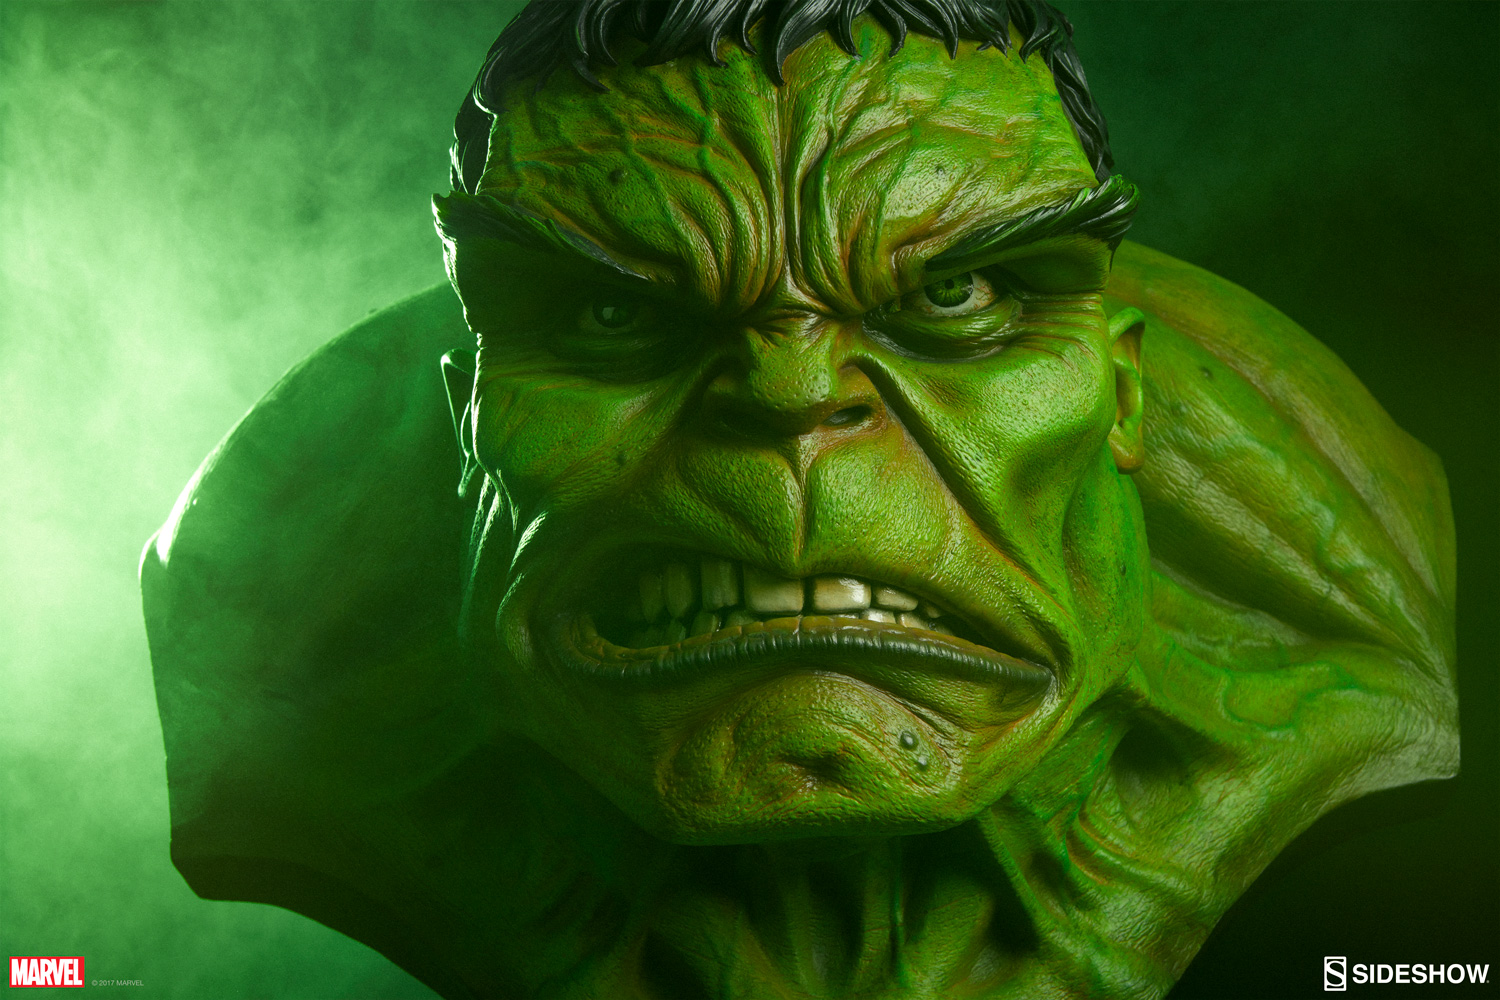 This is an image of Magic Incredible Hulk Images